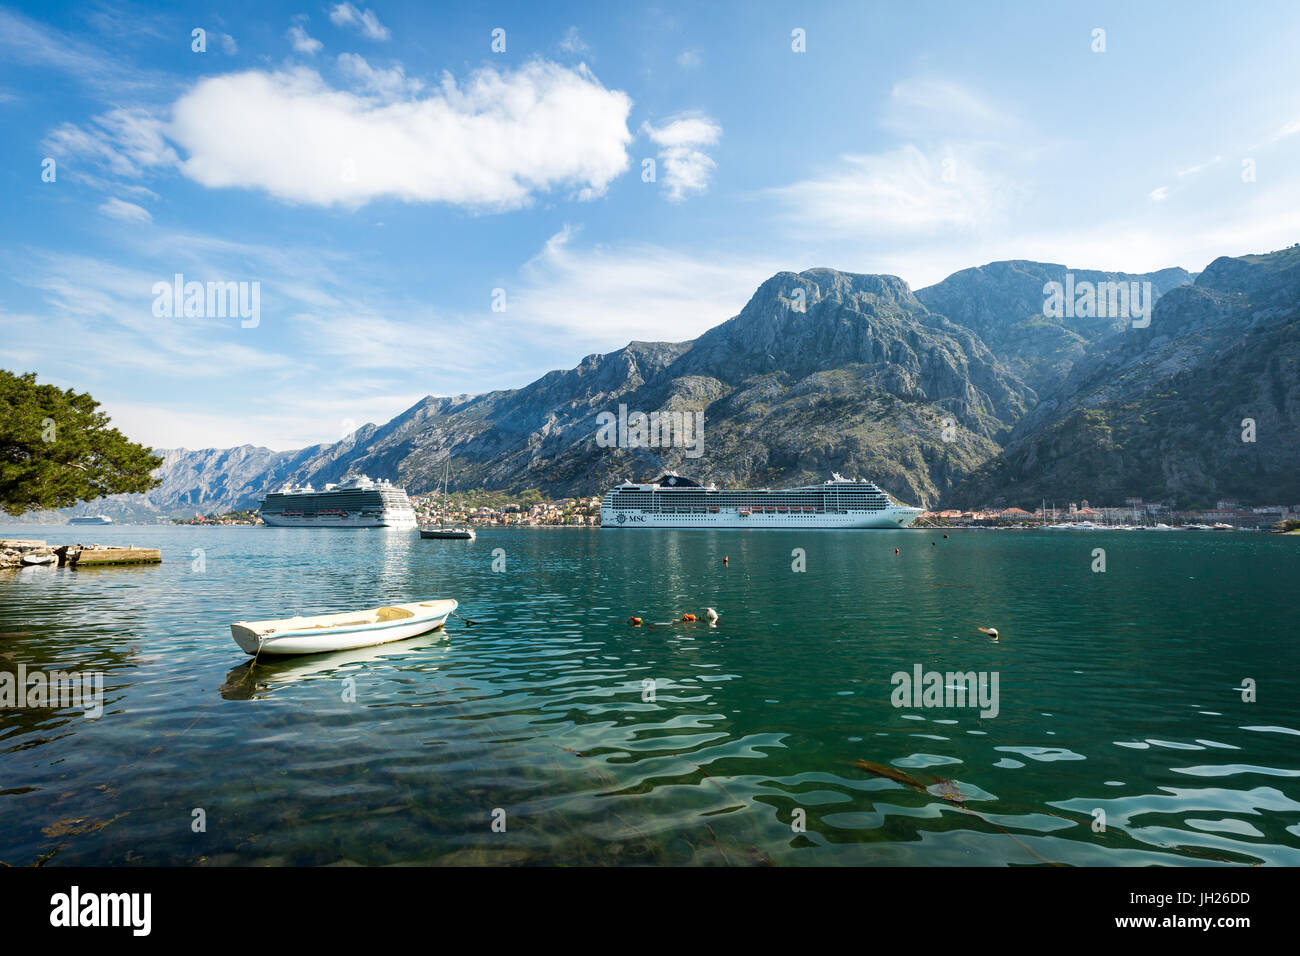 Cruise ships in the Bay of Kotor, UNESCO World Heritage Site Stock